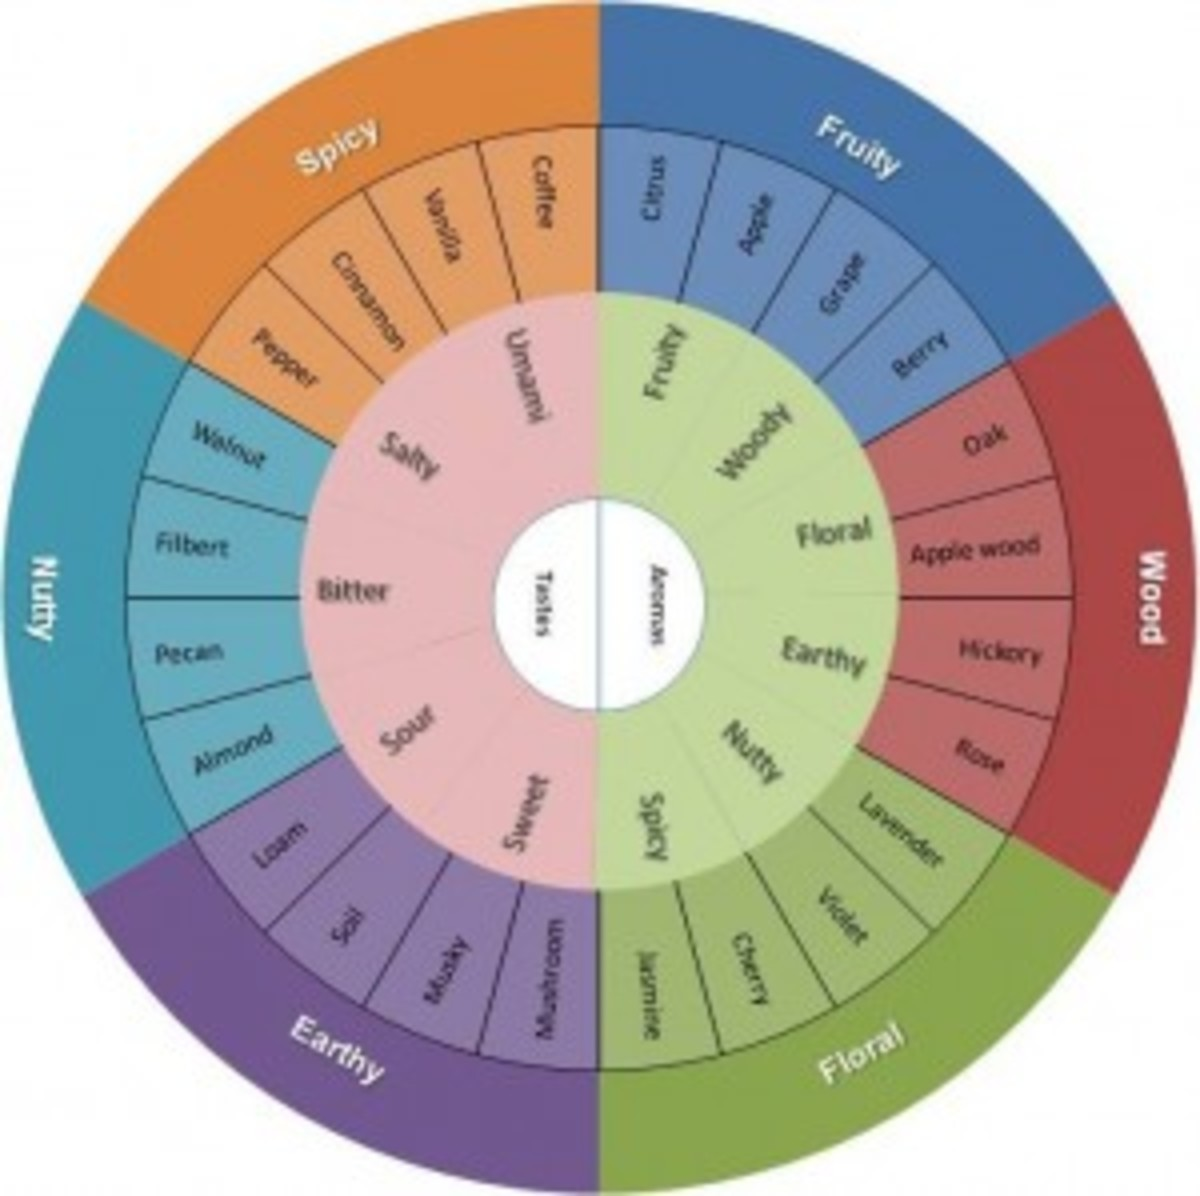 Follow the link to print out this chocolate flavor wheel. Print on white cardstock for each guest to take notes.